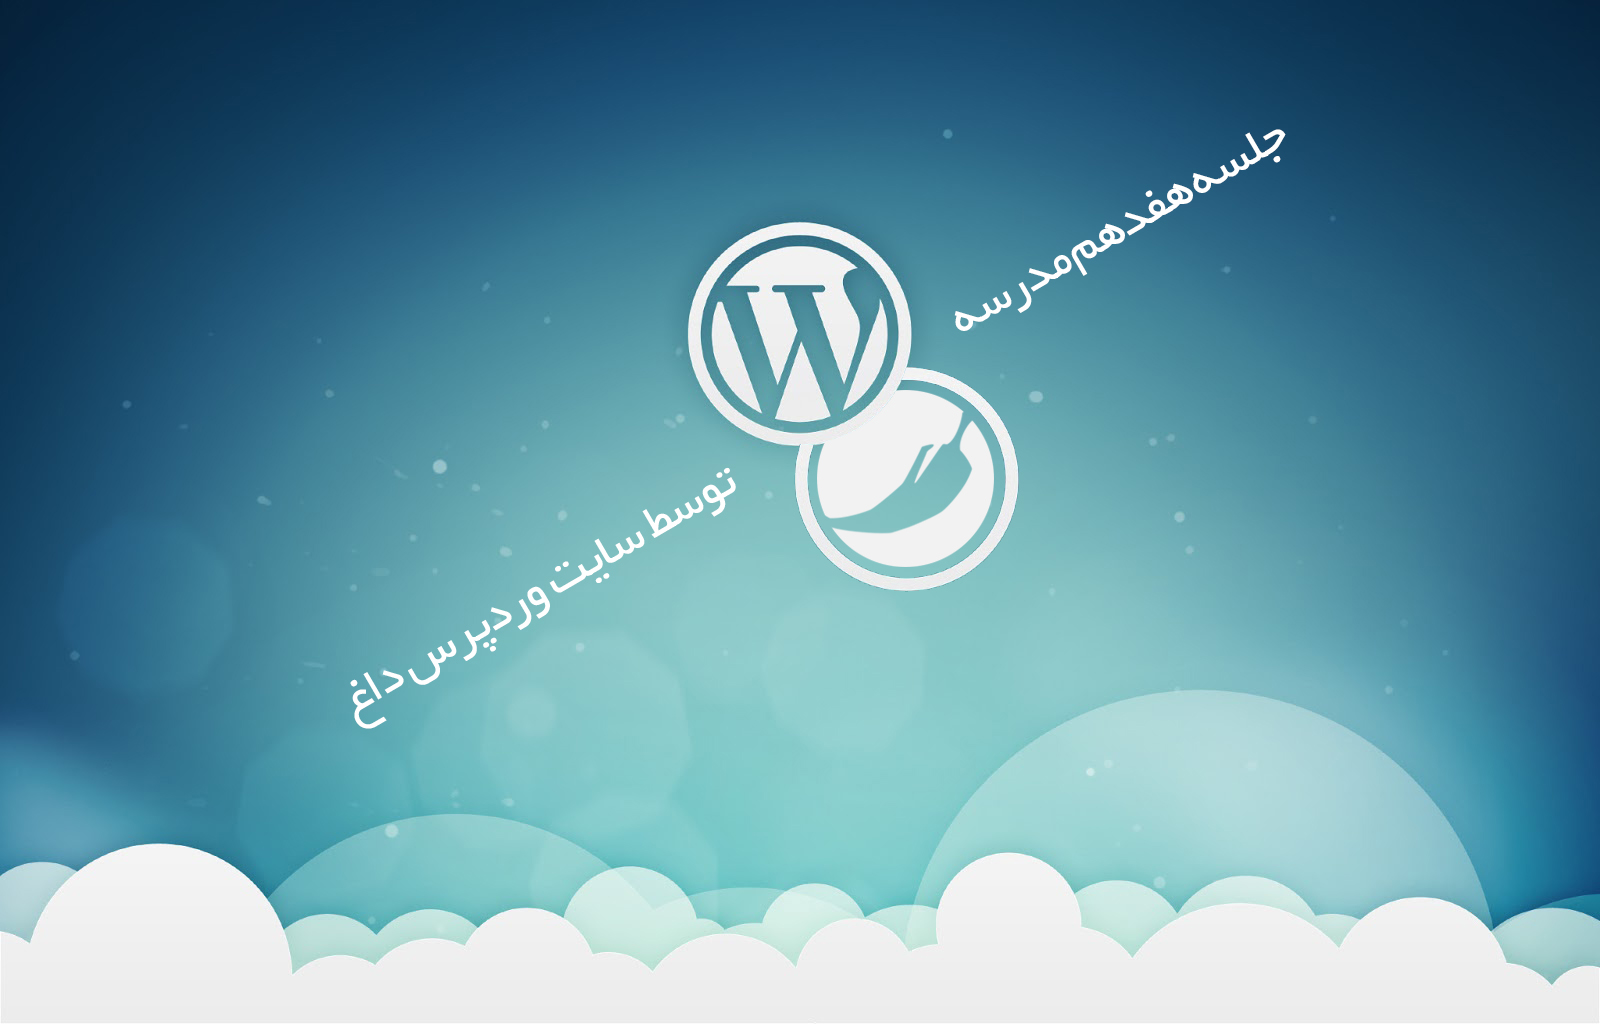 school-wordpress-redwp-17